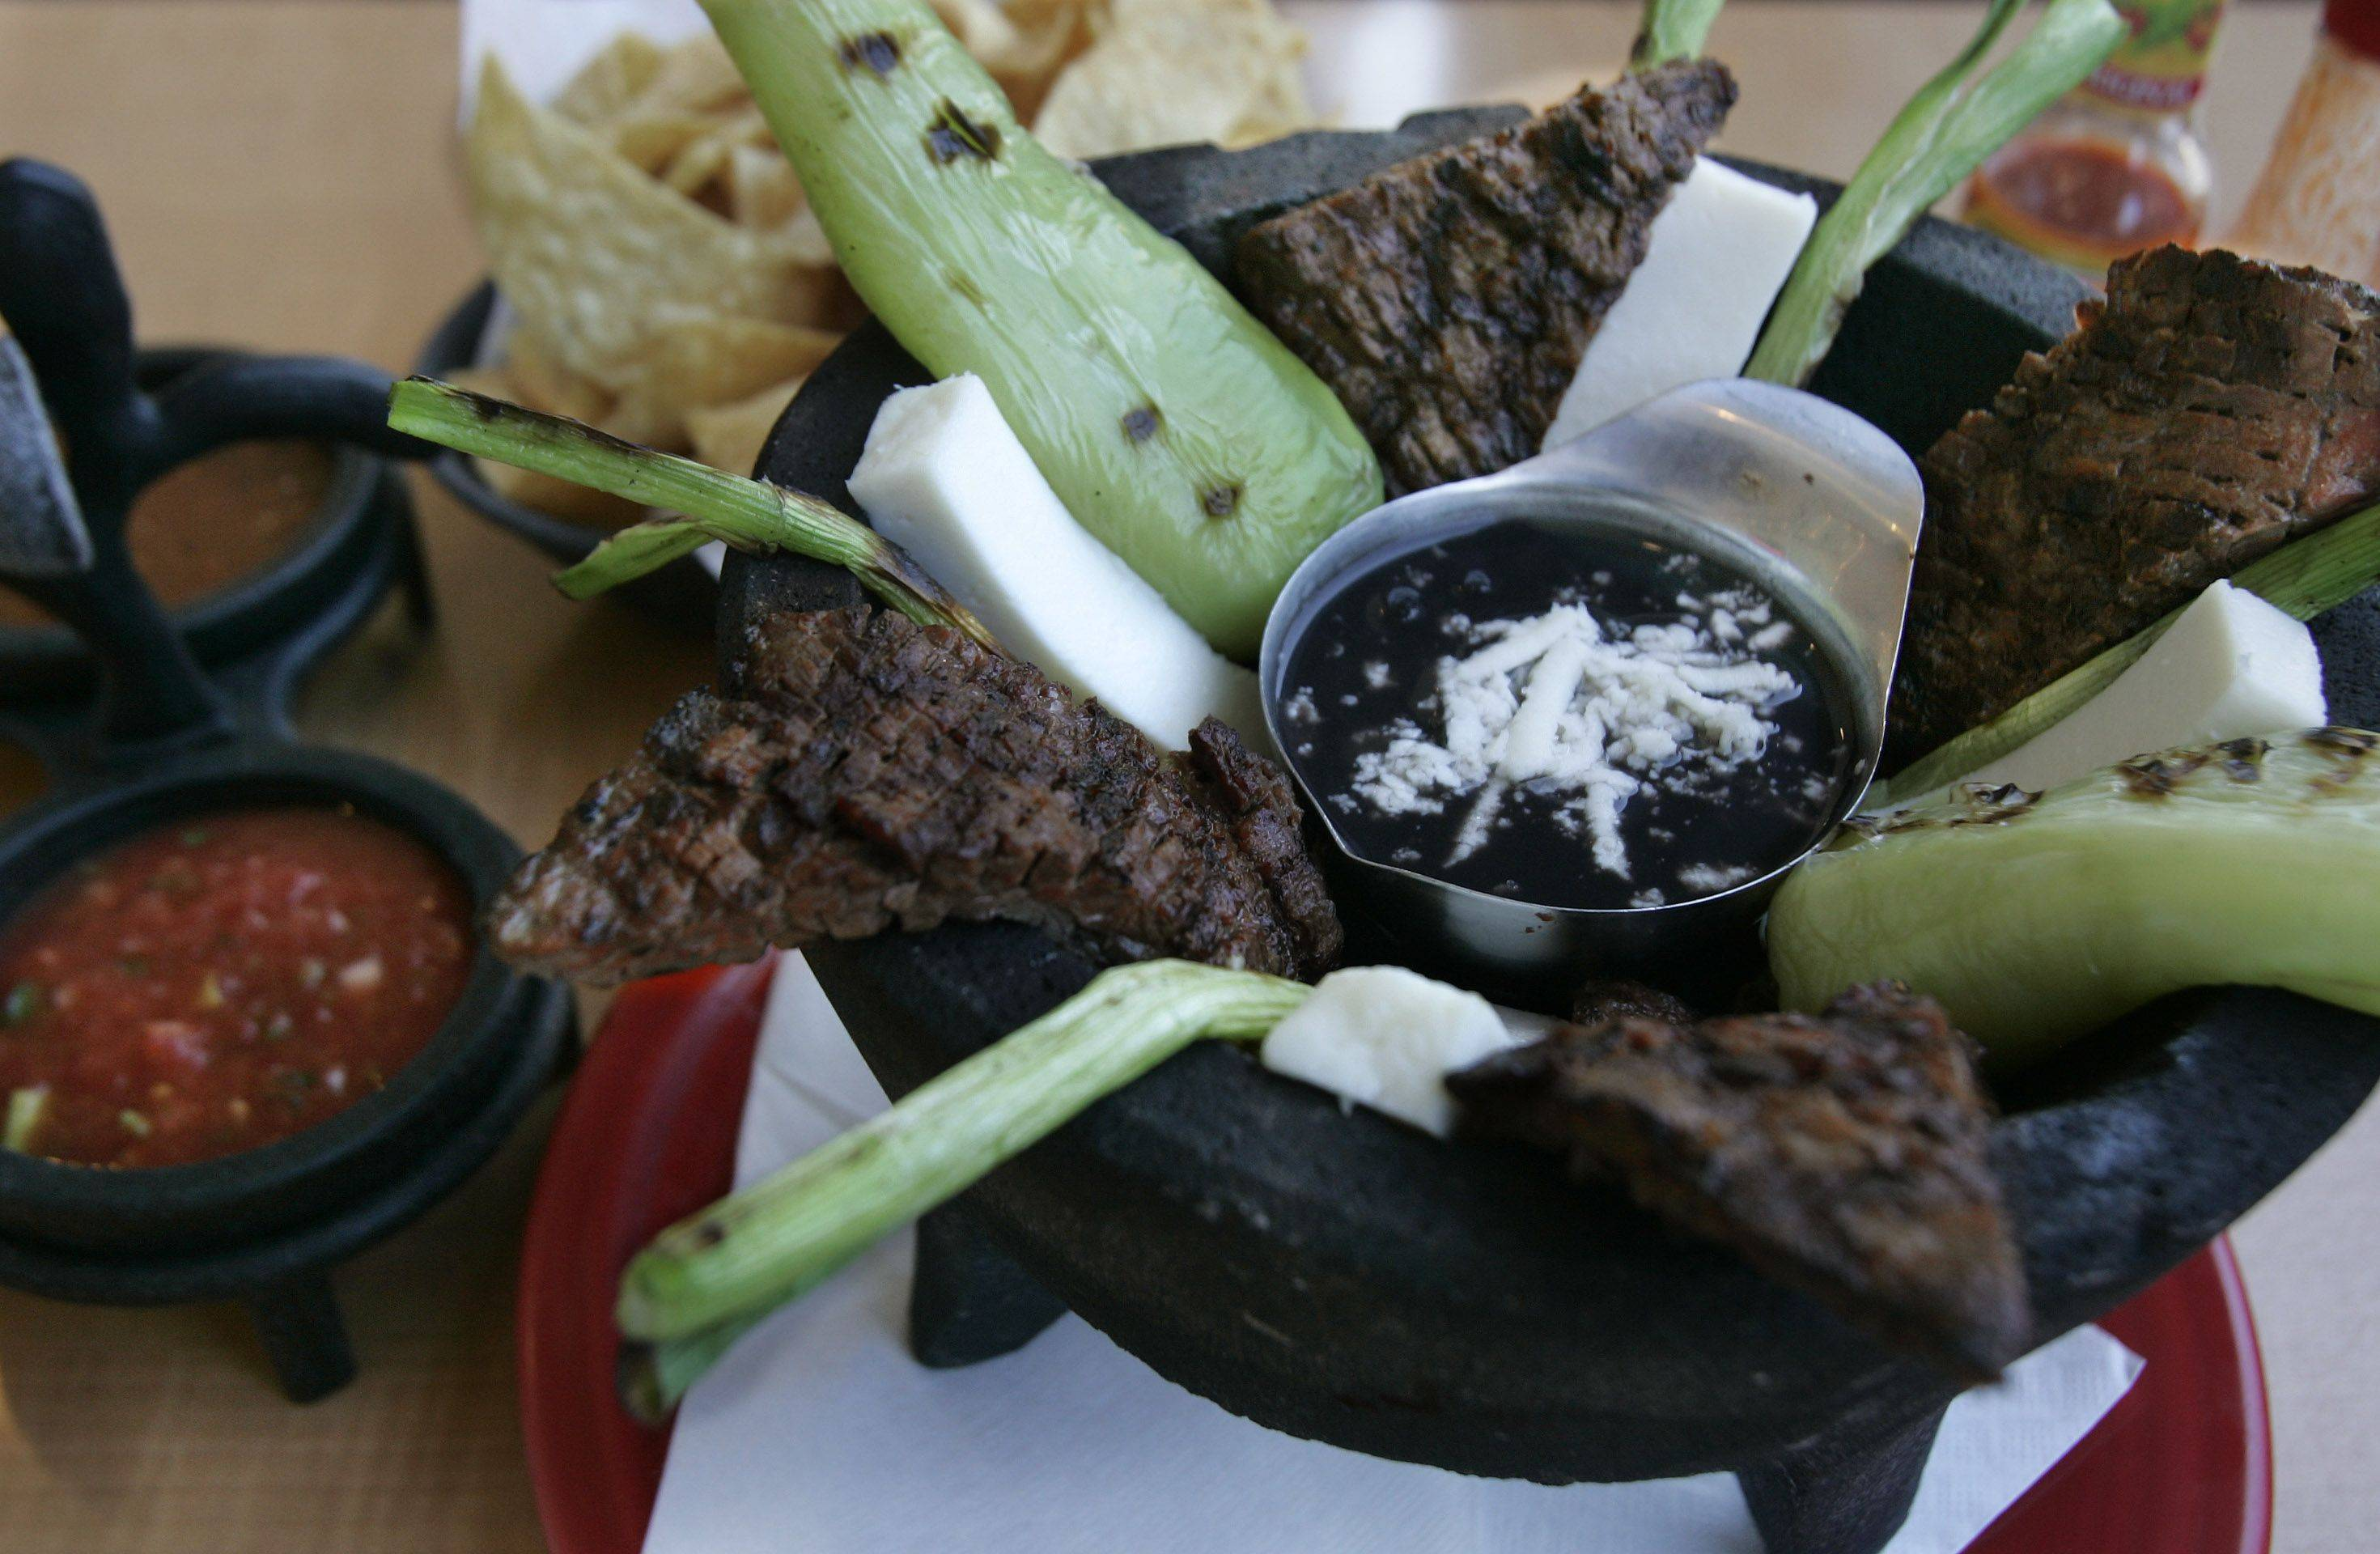 Molcajete — skirt steak with green onions, banana peppers, queso fresco and black beans — is one of the options at Casa Bonita in Libertyville.